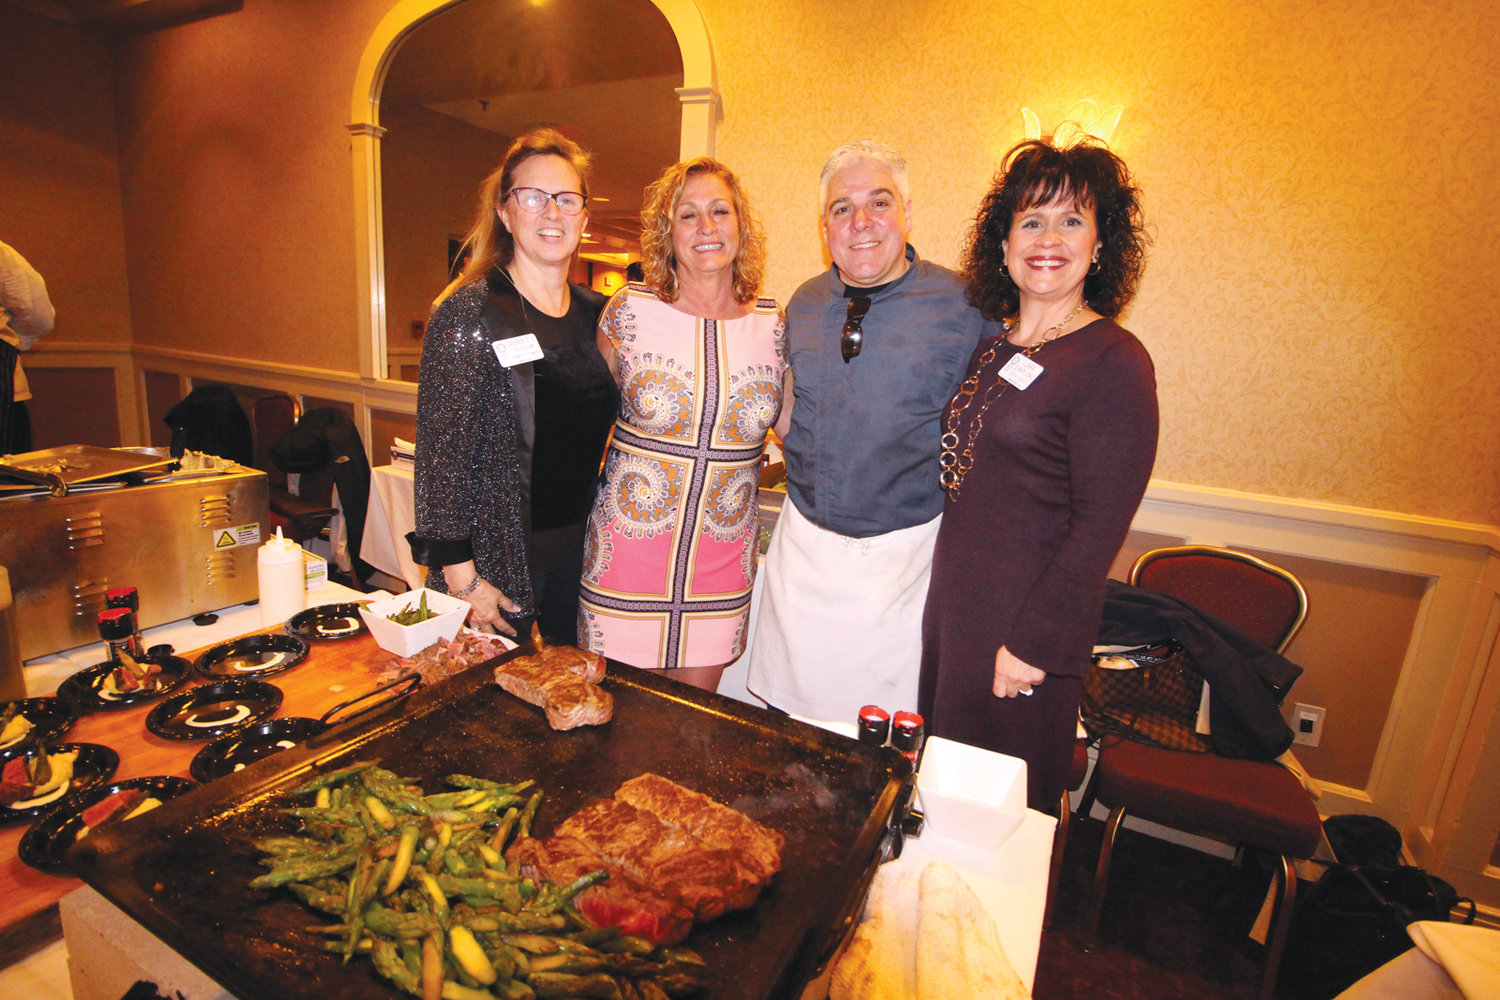 GALA TEAM: Dean Scanlon of the Revolution in Pawtuxet takes a break from carving filet minion that was served with asparagus to join for a group photograph with Janis Constantine, gala co-chair to his right and team members Lauren Slocum (left) and Lara D'Antuono.